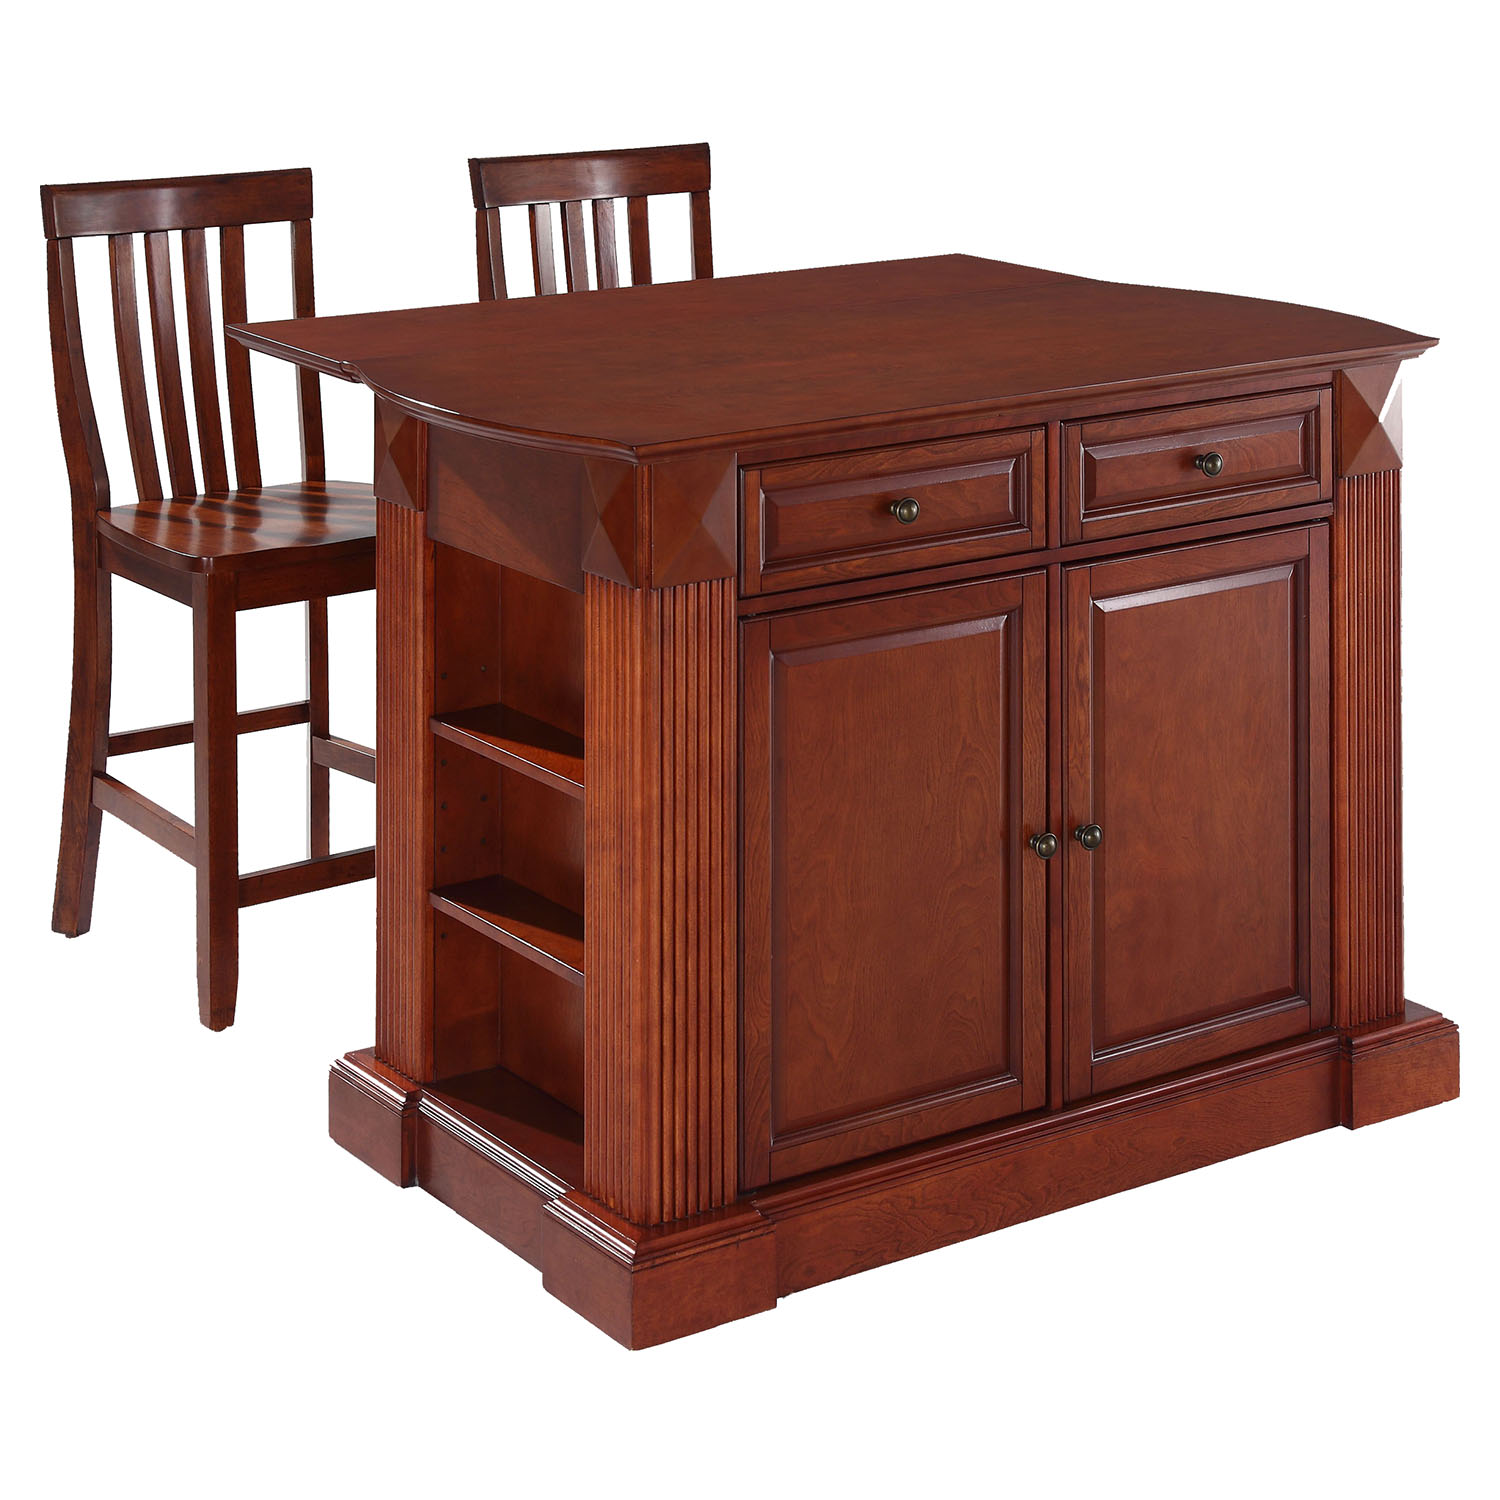 Drop Leaf Kitchen Island In Cherry With 24 Cherry School House Stools Dcg Stores